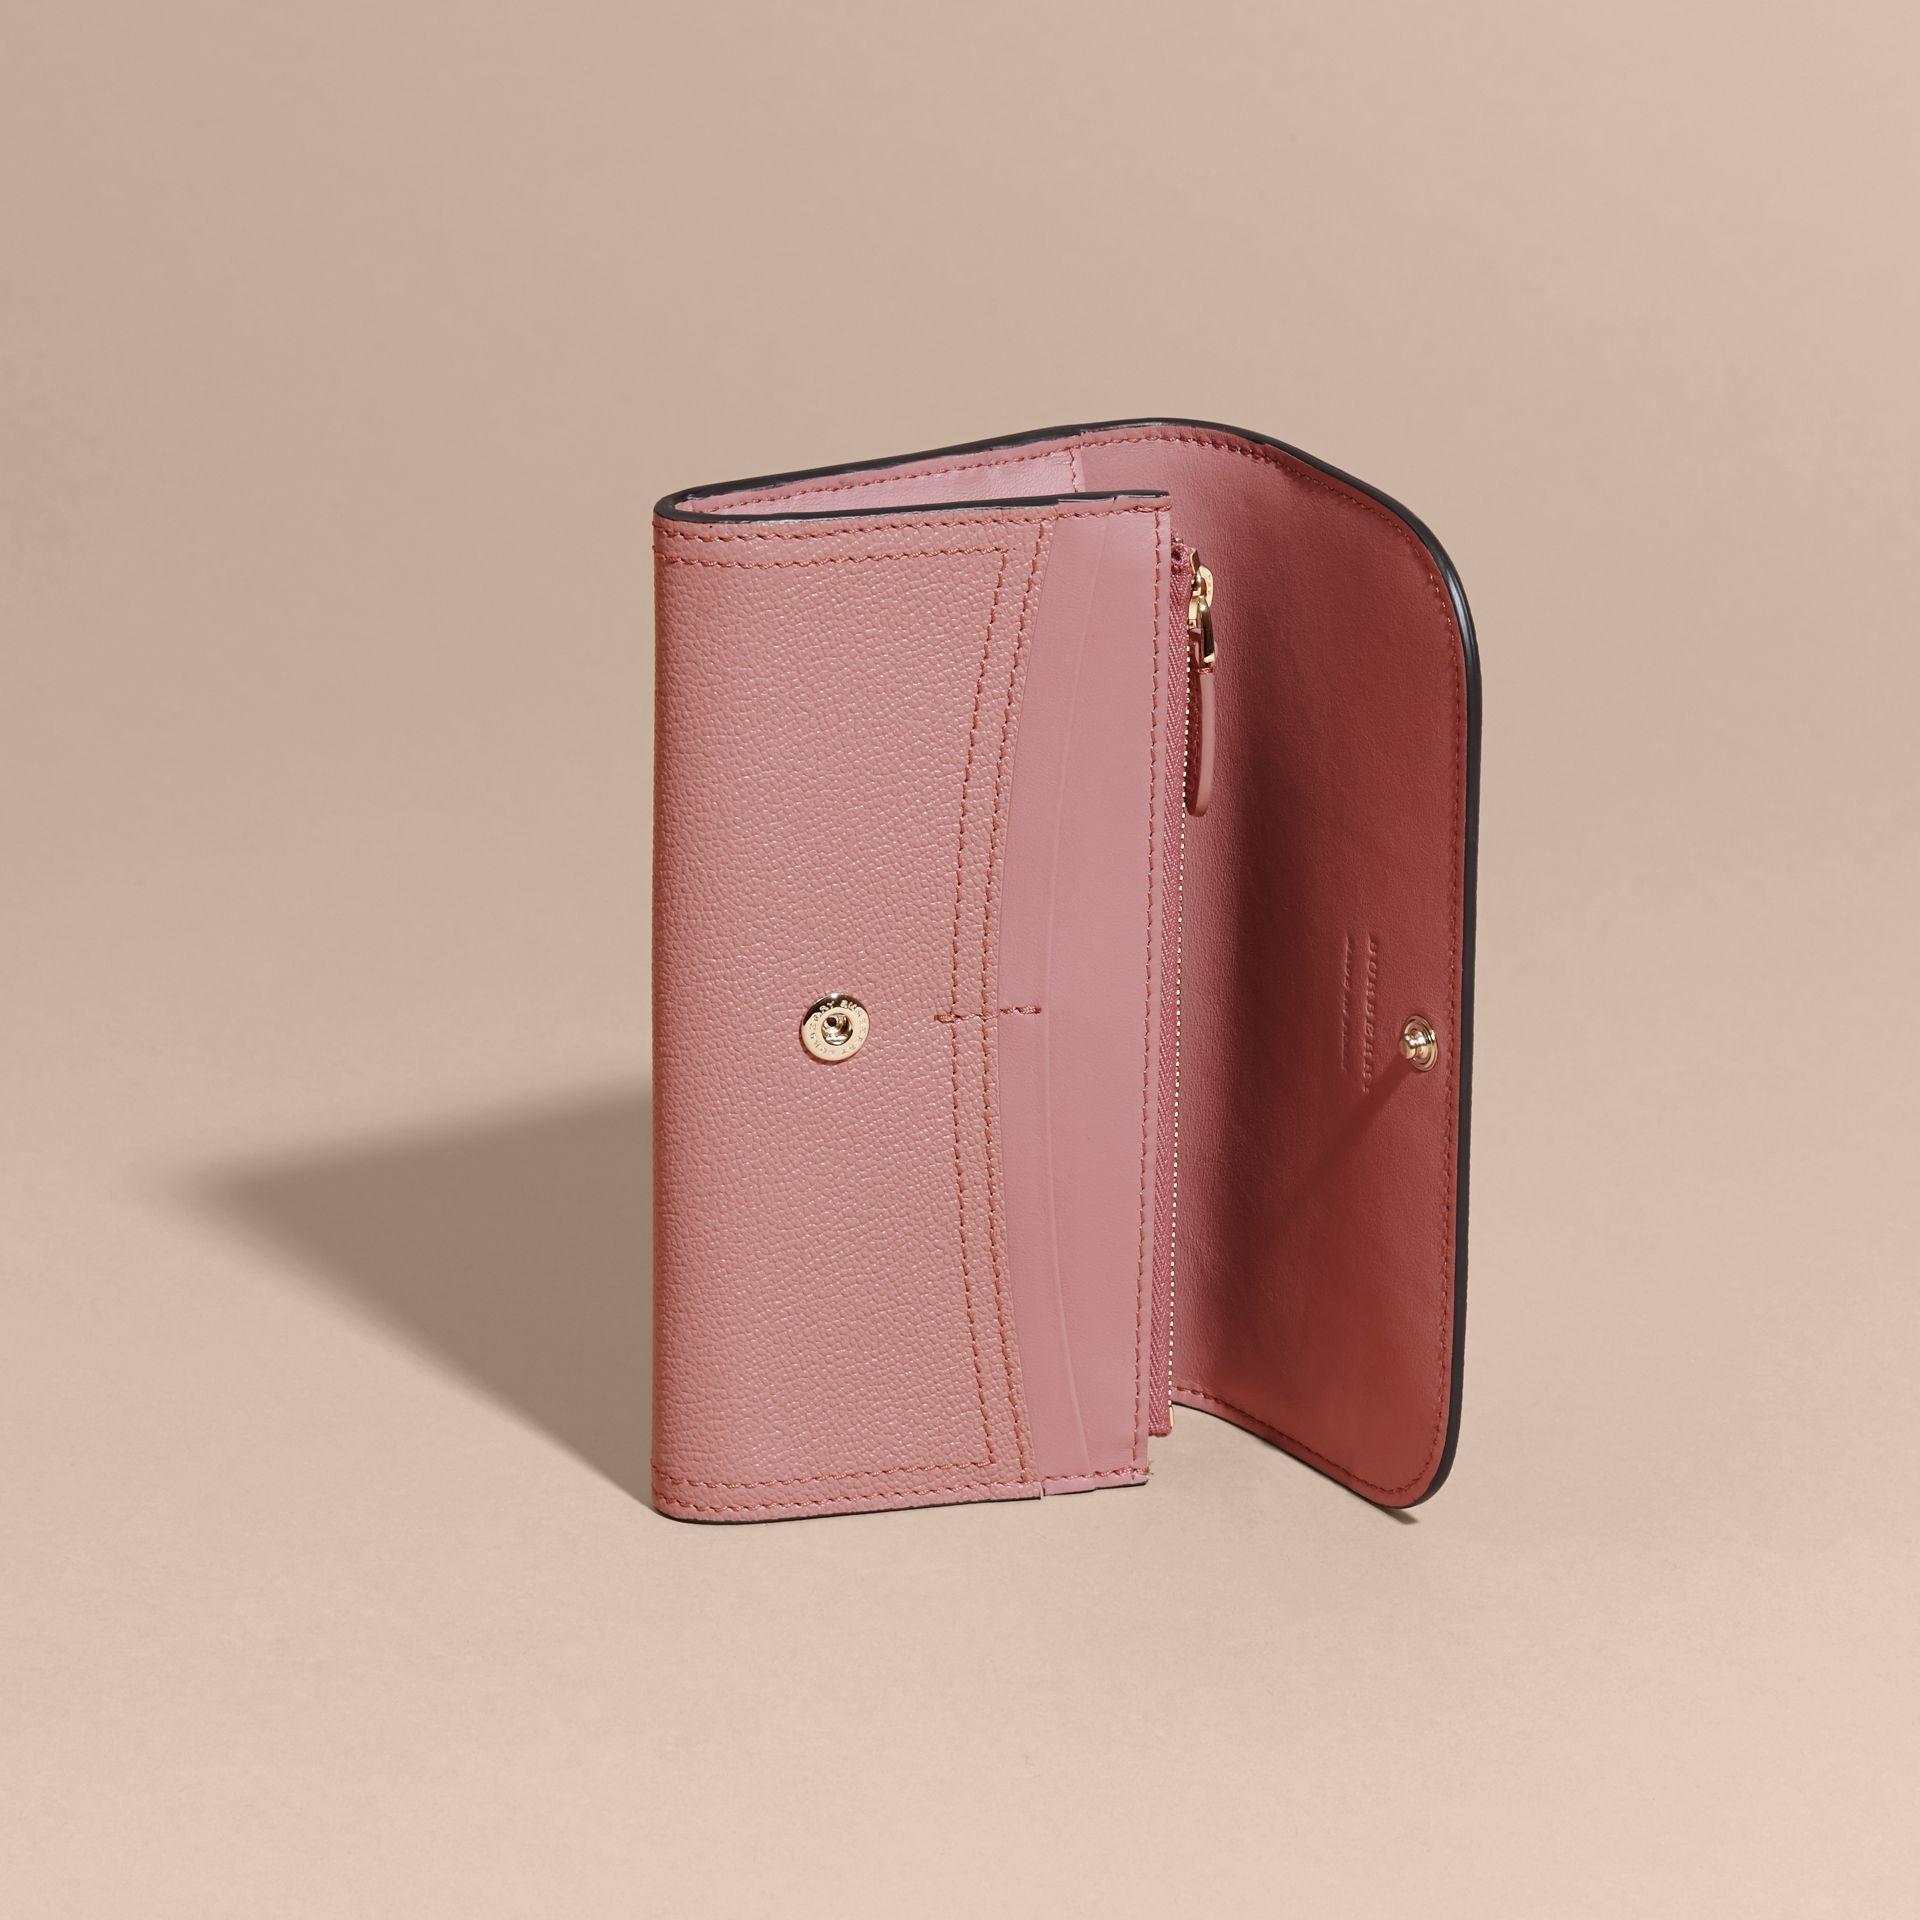 Grainy Leather Slim Continental Wallet in Dusty Pink - Women | Burberry - gallery image 6